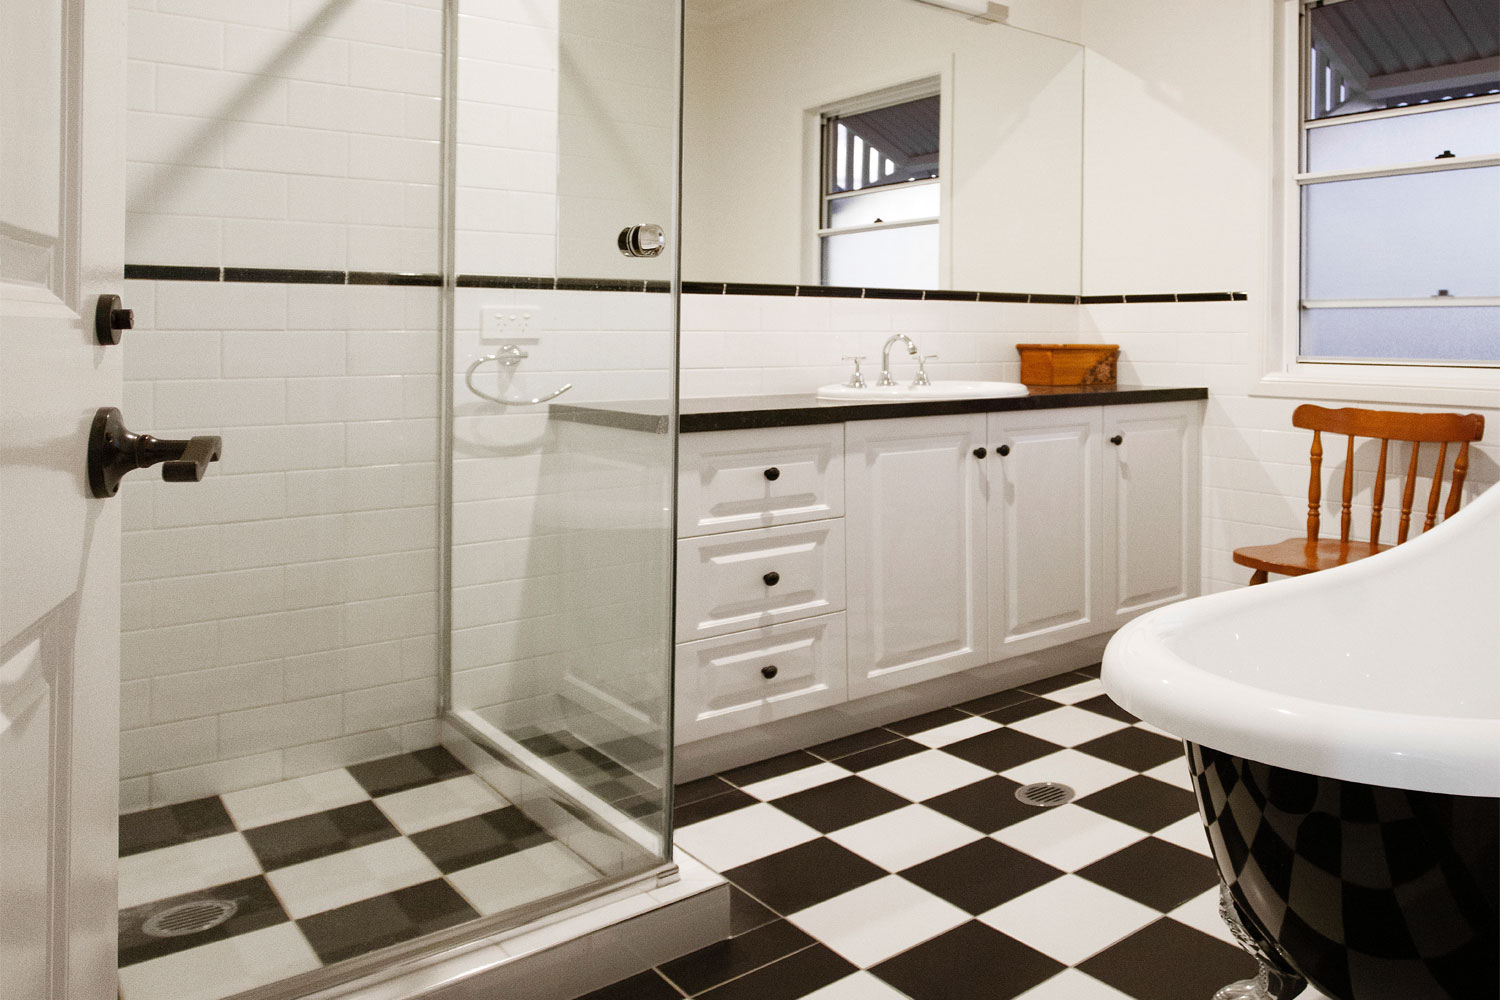 Small Queenslander Bathroom grandeur and opulence: a classic queenslander 'small house'